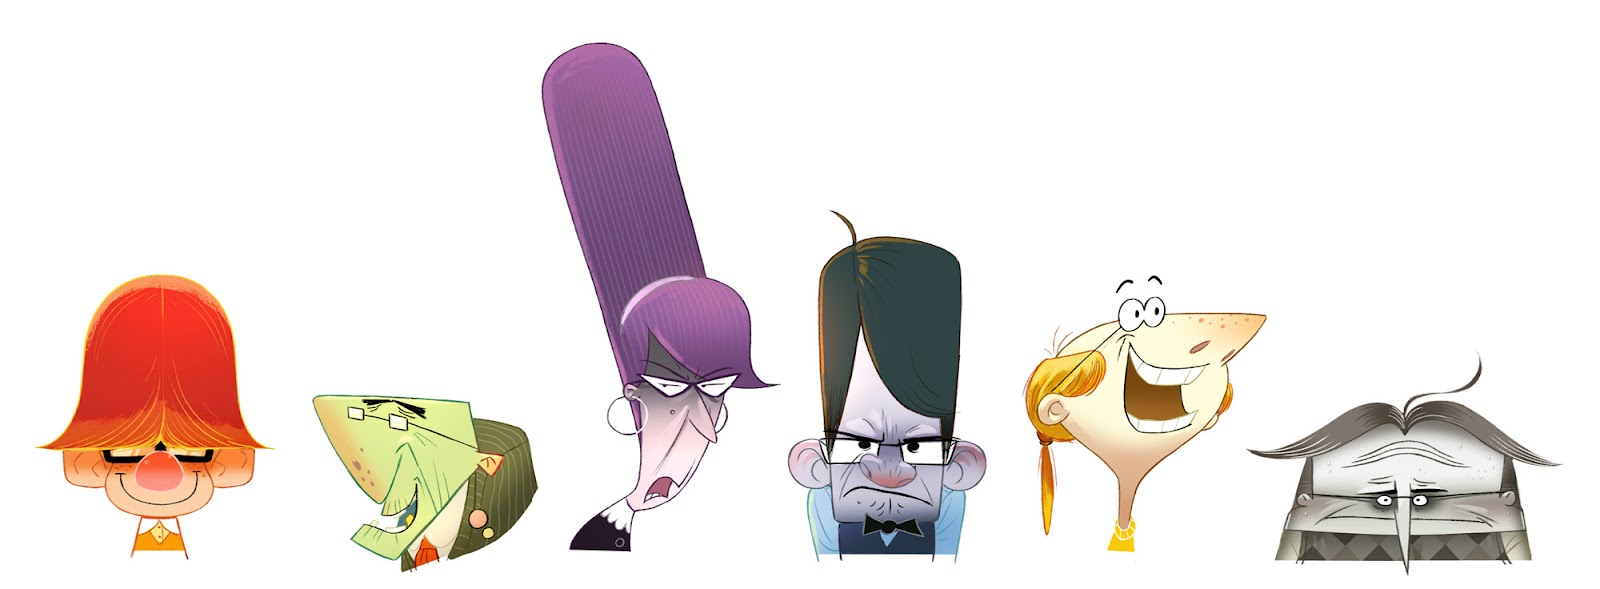 Character Design For Animation Class With Nate Wragg : Tarkstuff cgma character design classes with nate wragg pt